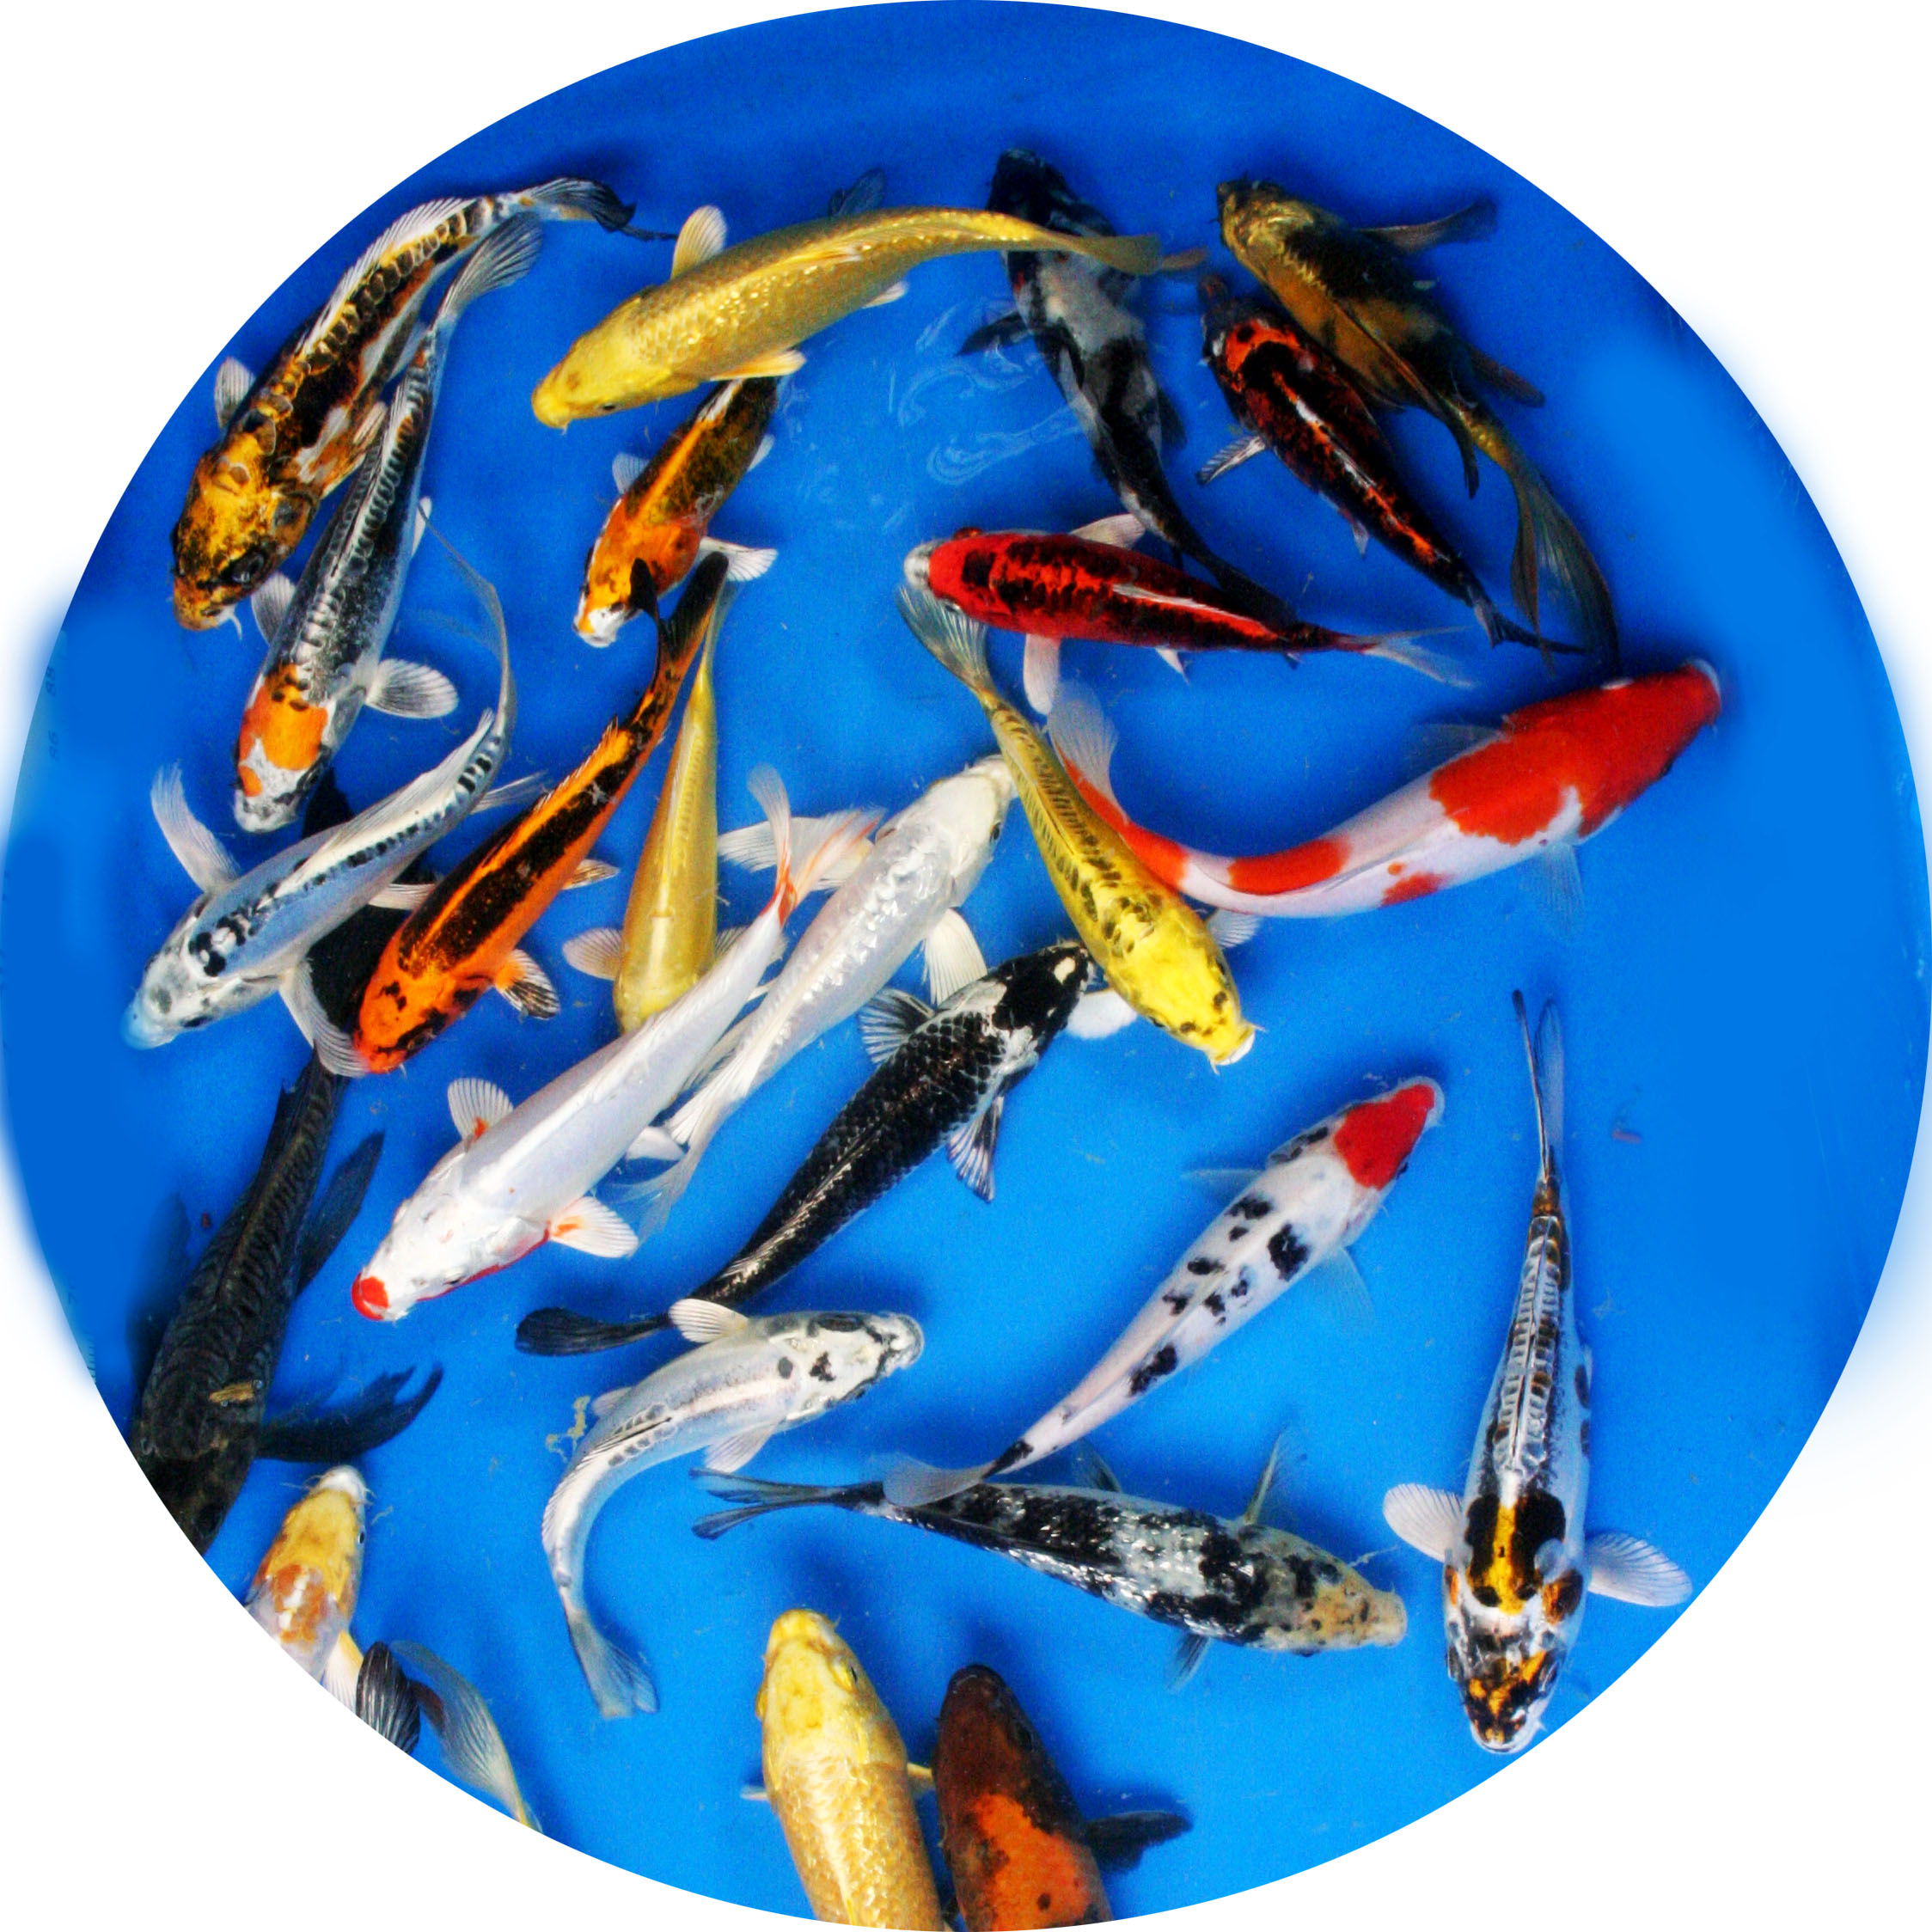 Premium grade butterfly fin variety pack 8 10 2 fish for Expensive koi carp for sale